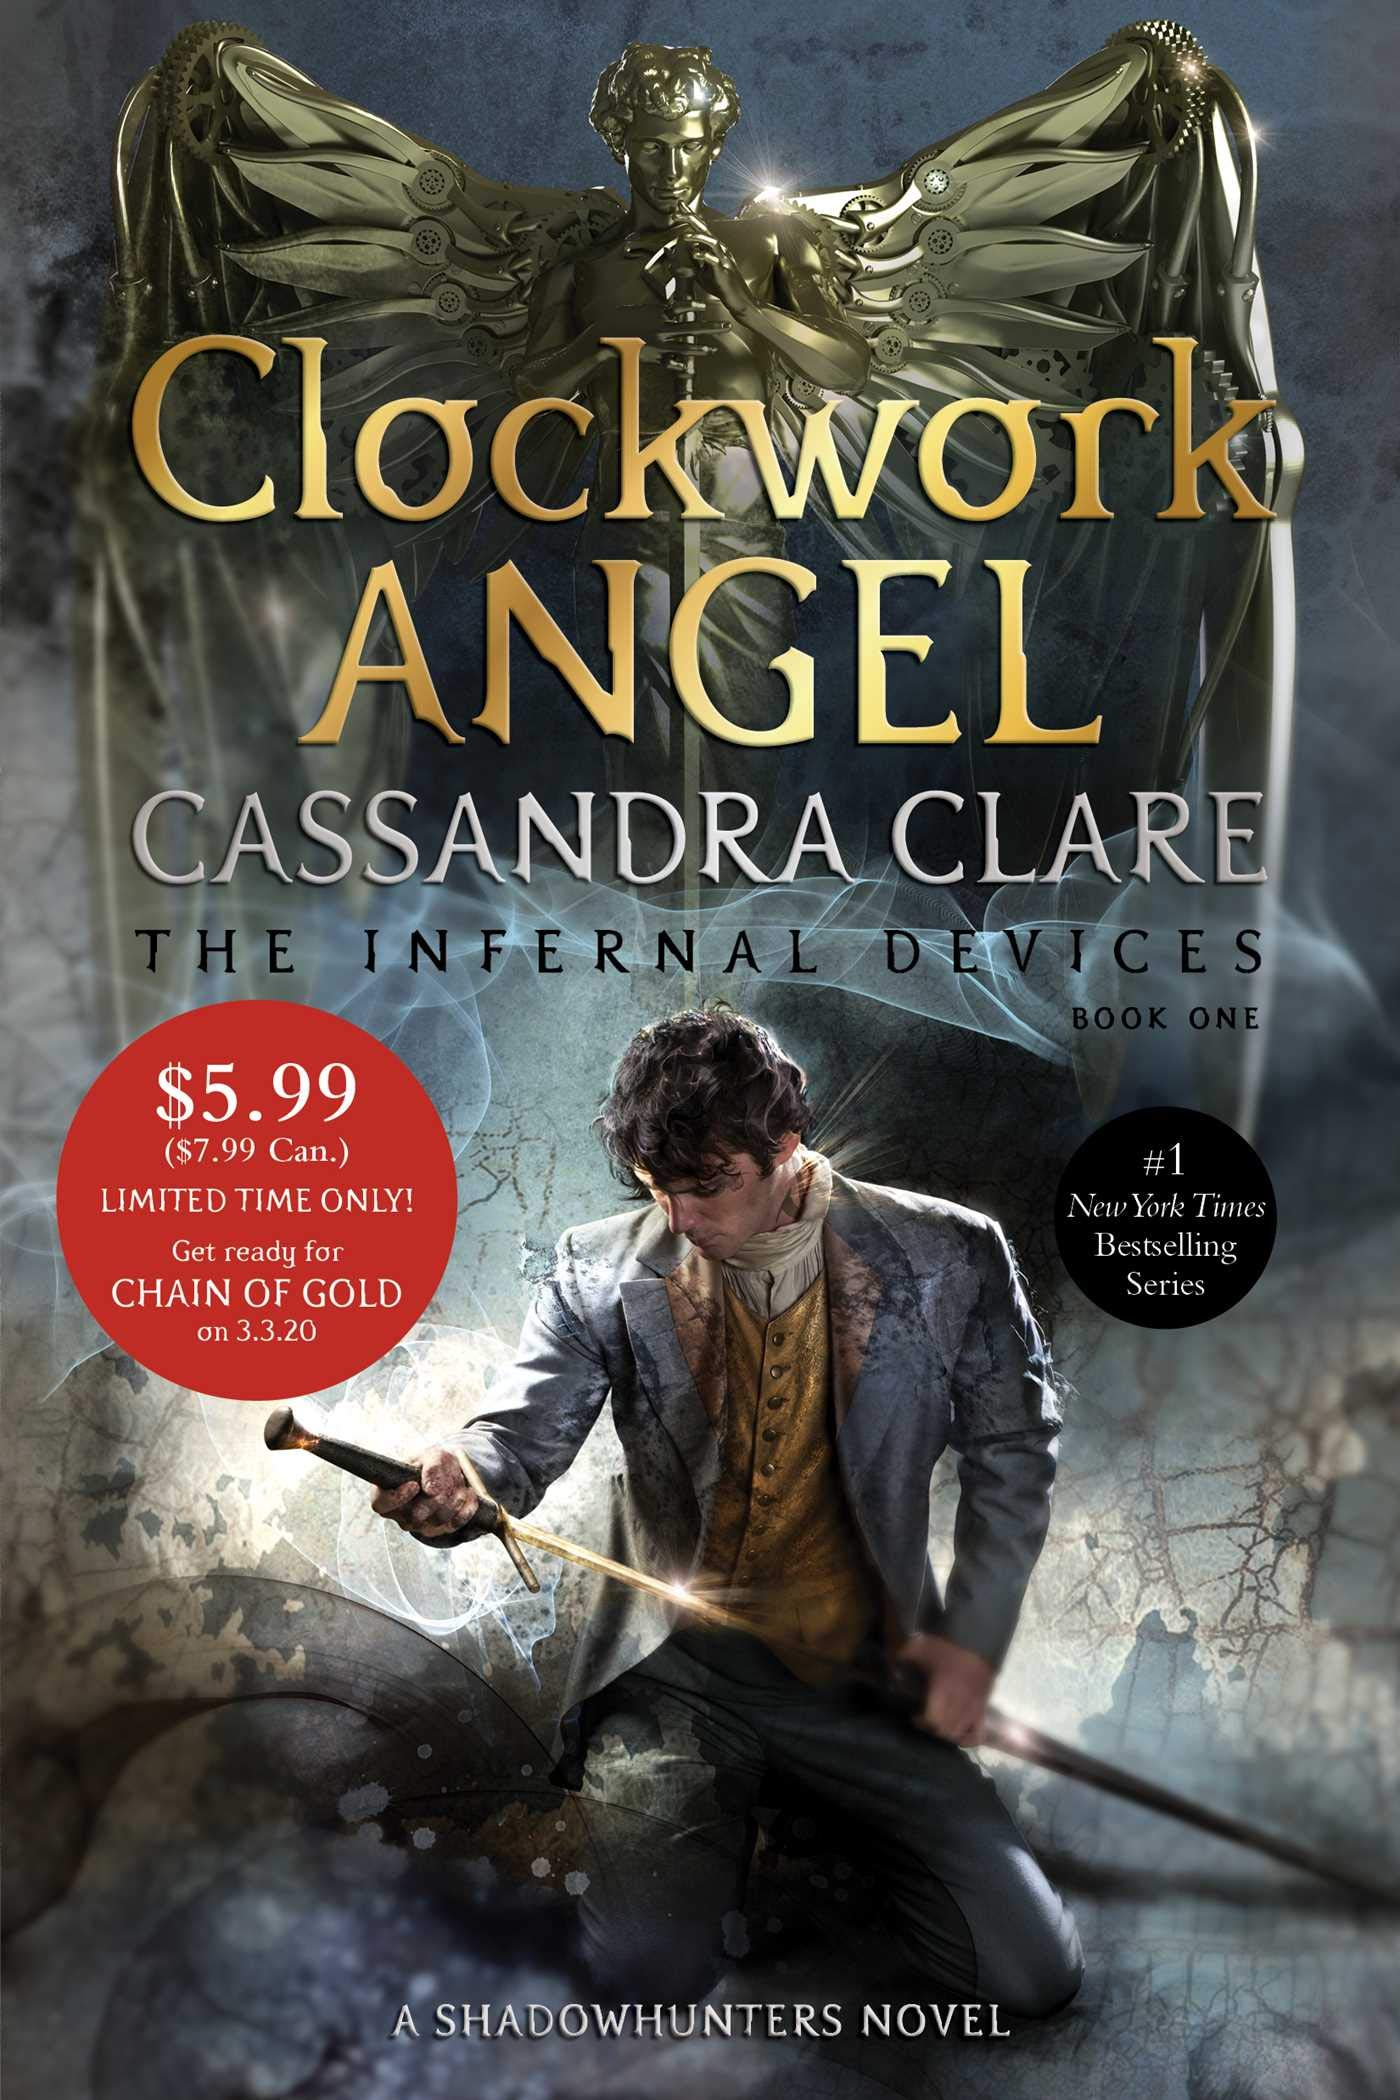 Clockwork Angel (Volume 1): Amazon.ca: Clare, Cassandra: Books